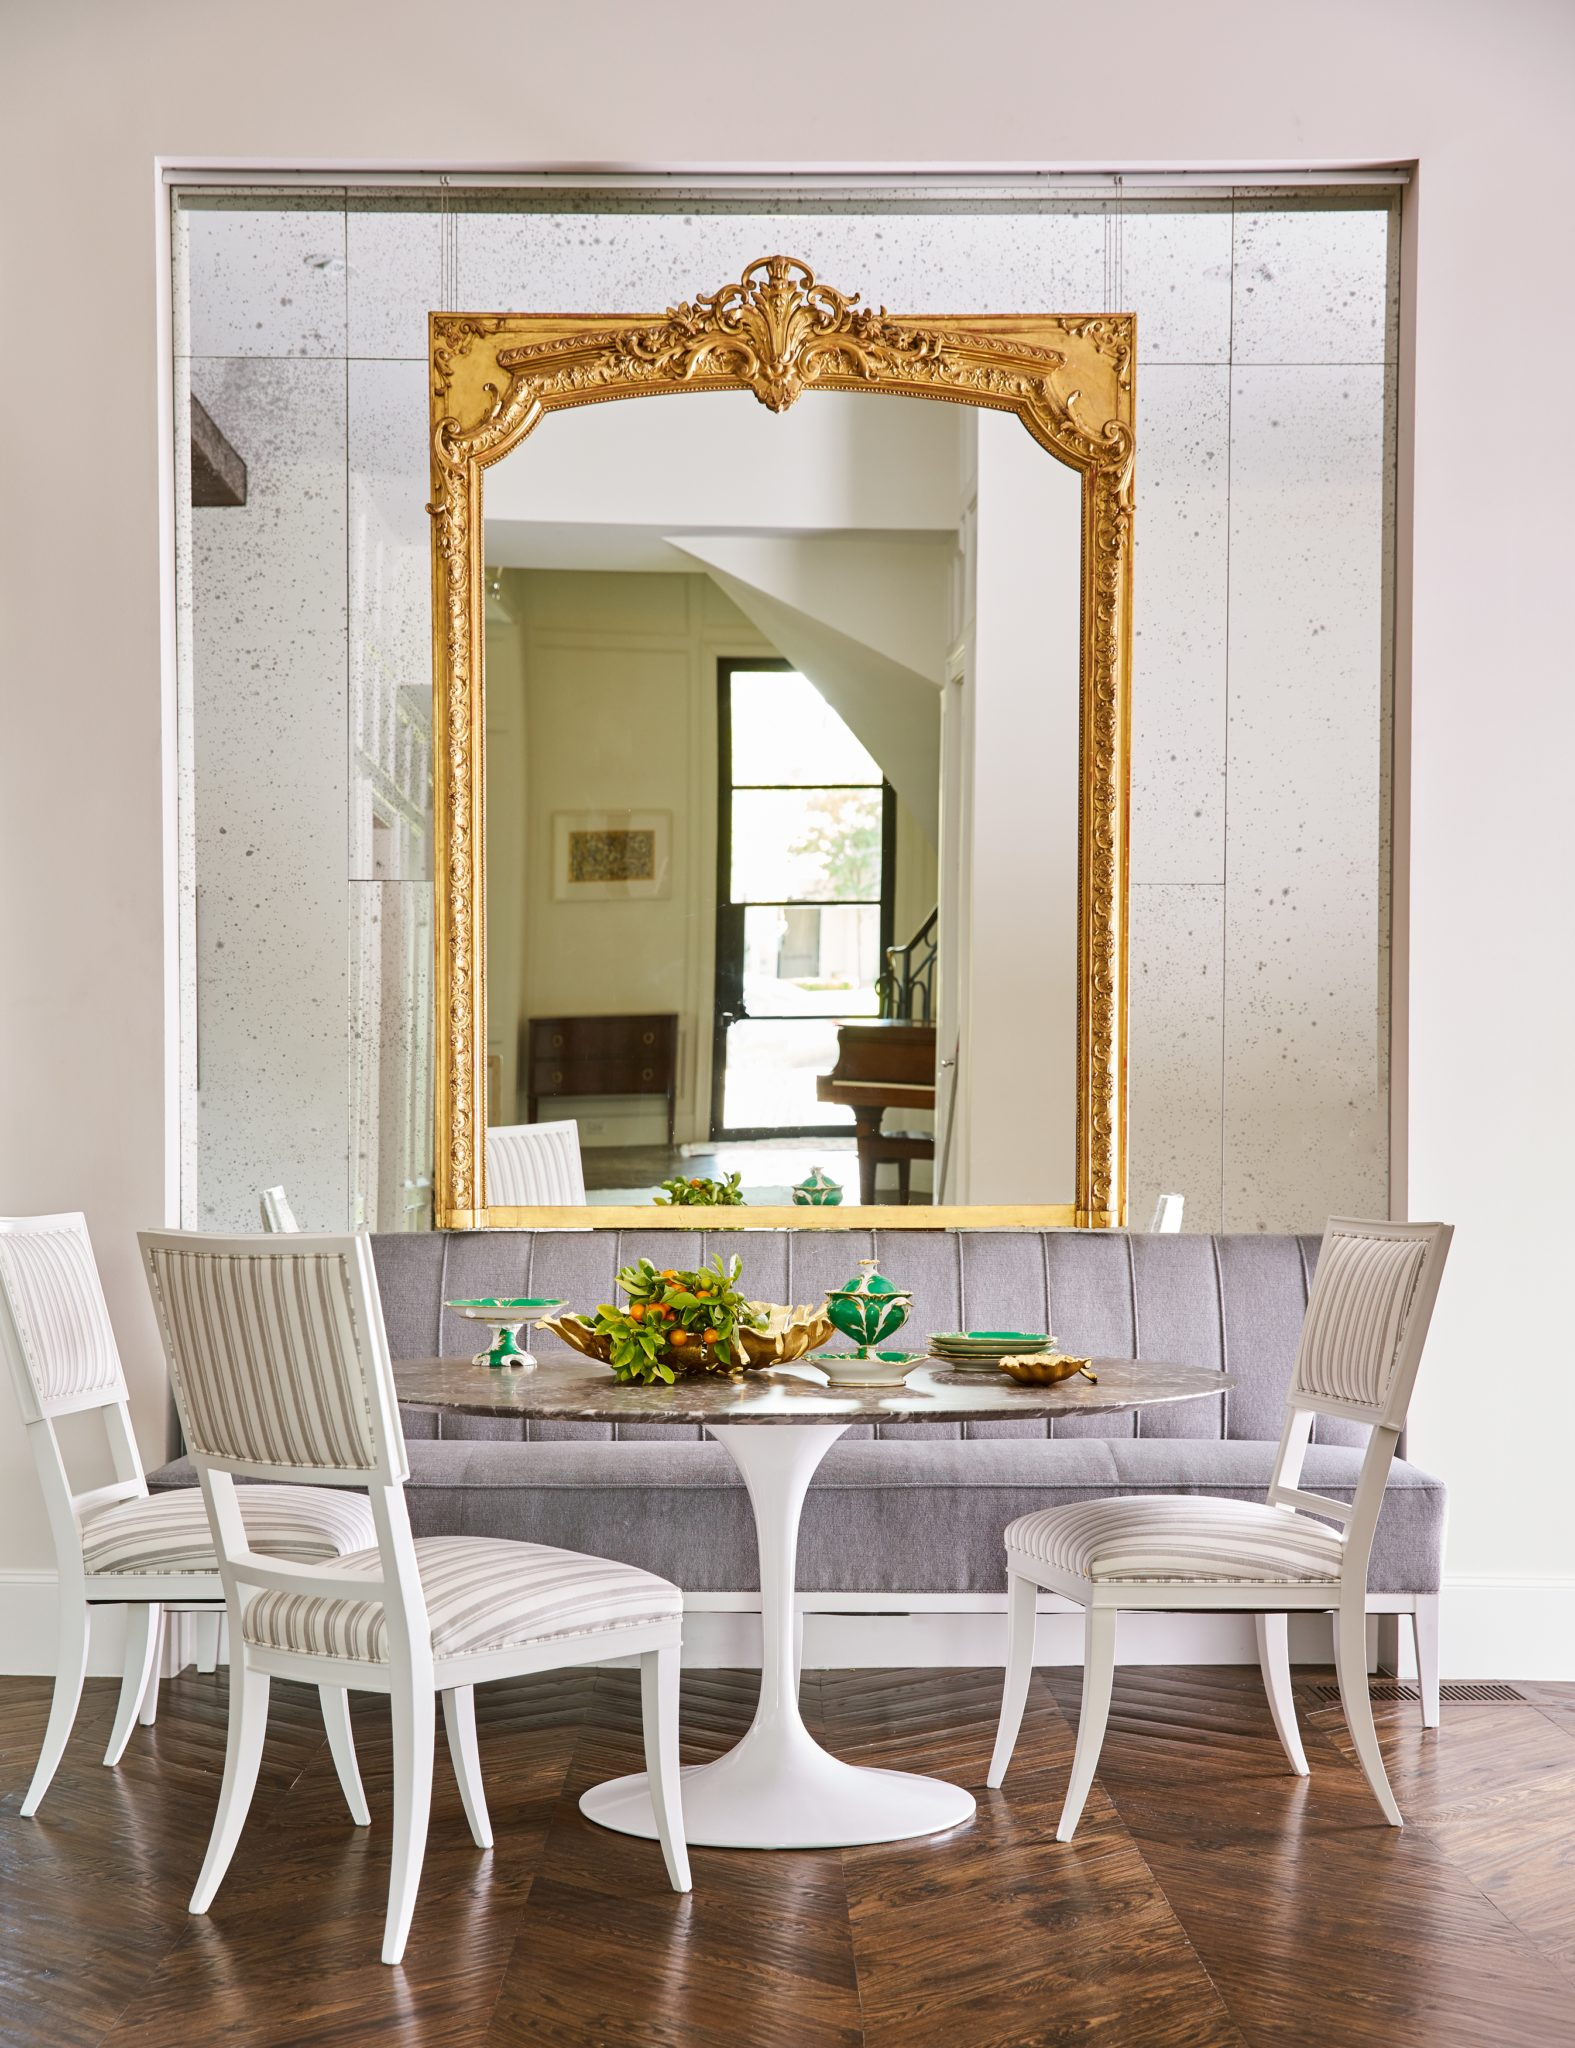 "Place Large Mirrors Where Light Hits   Directly across from a window, a mirror bounces light around the room and reflects light as if it were a window. ""I love using mirrors to create a second window effect in a space,"" says Denise McGaha of Denise McGaha Interiors. ""By placing large mirrors or even an entire wall of mirror, I feel it can double the light in a room. As long as they reflect the natural light, the placement is completely up to you."""